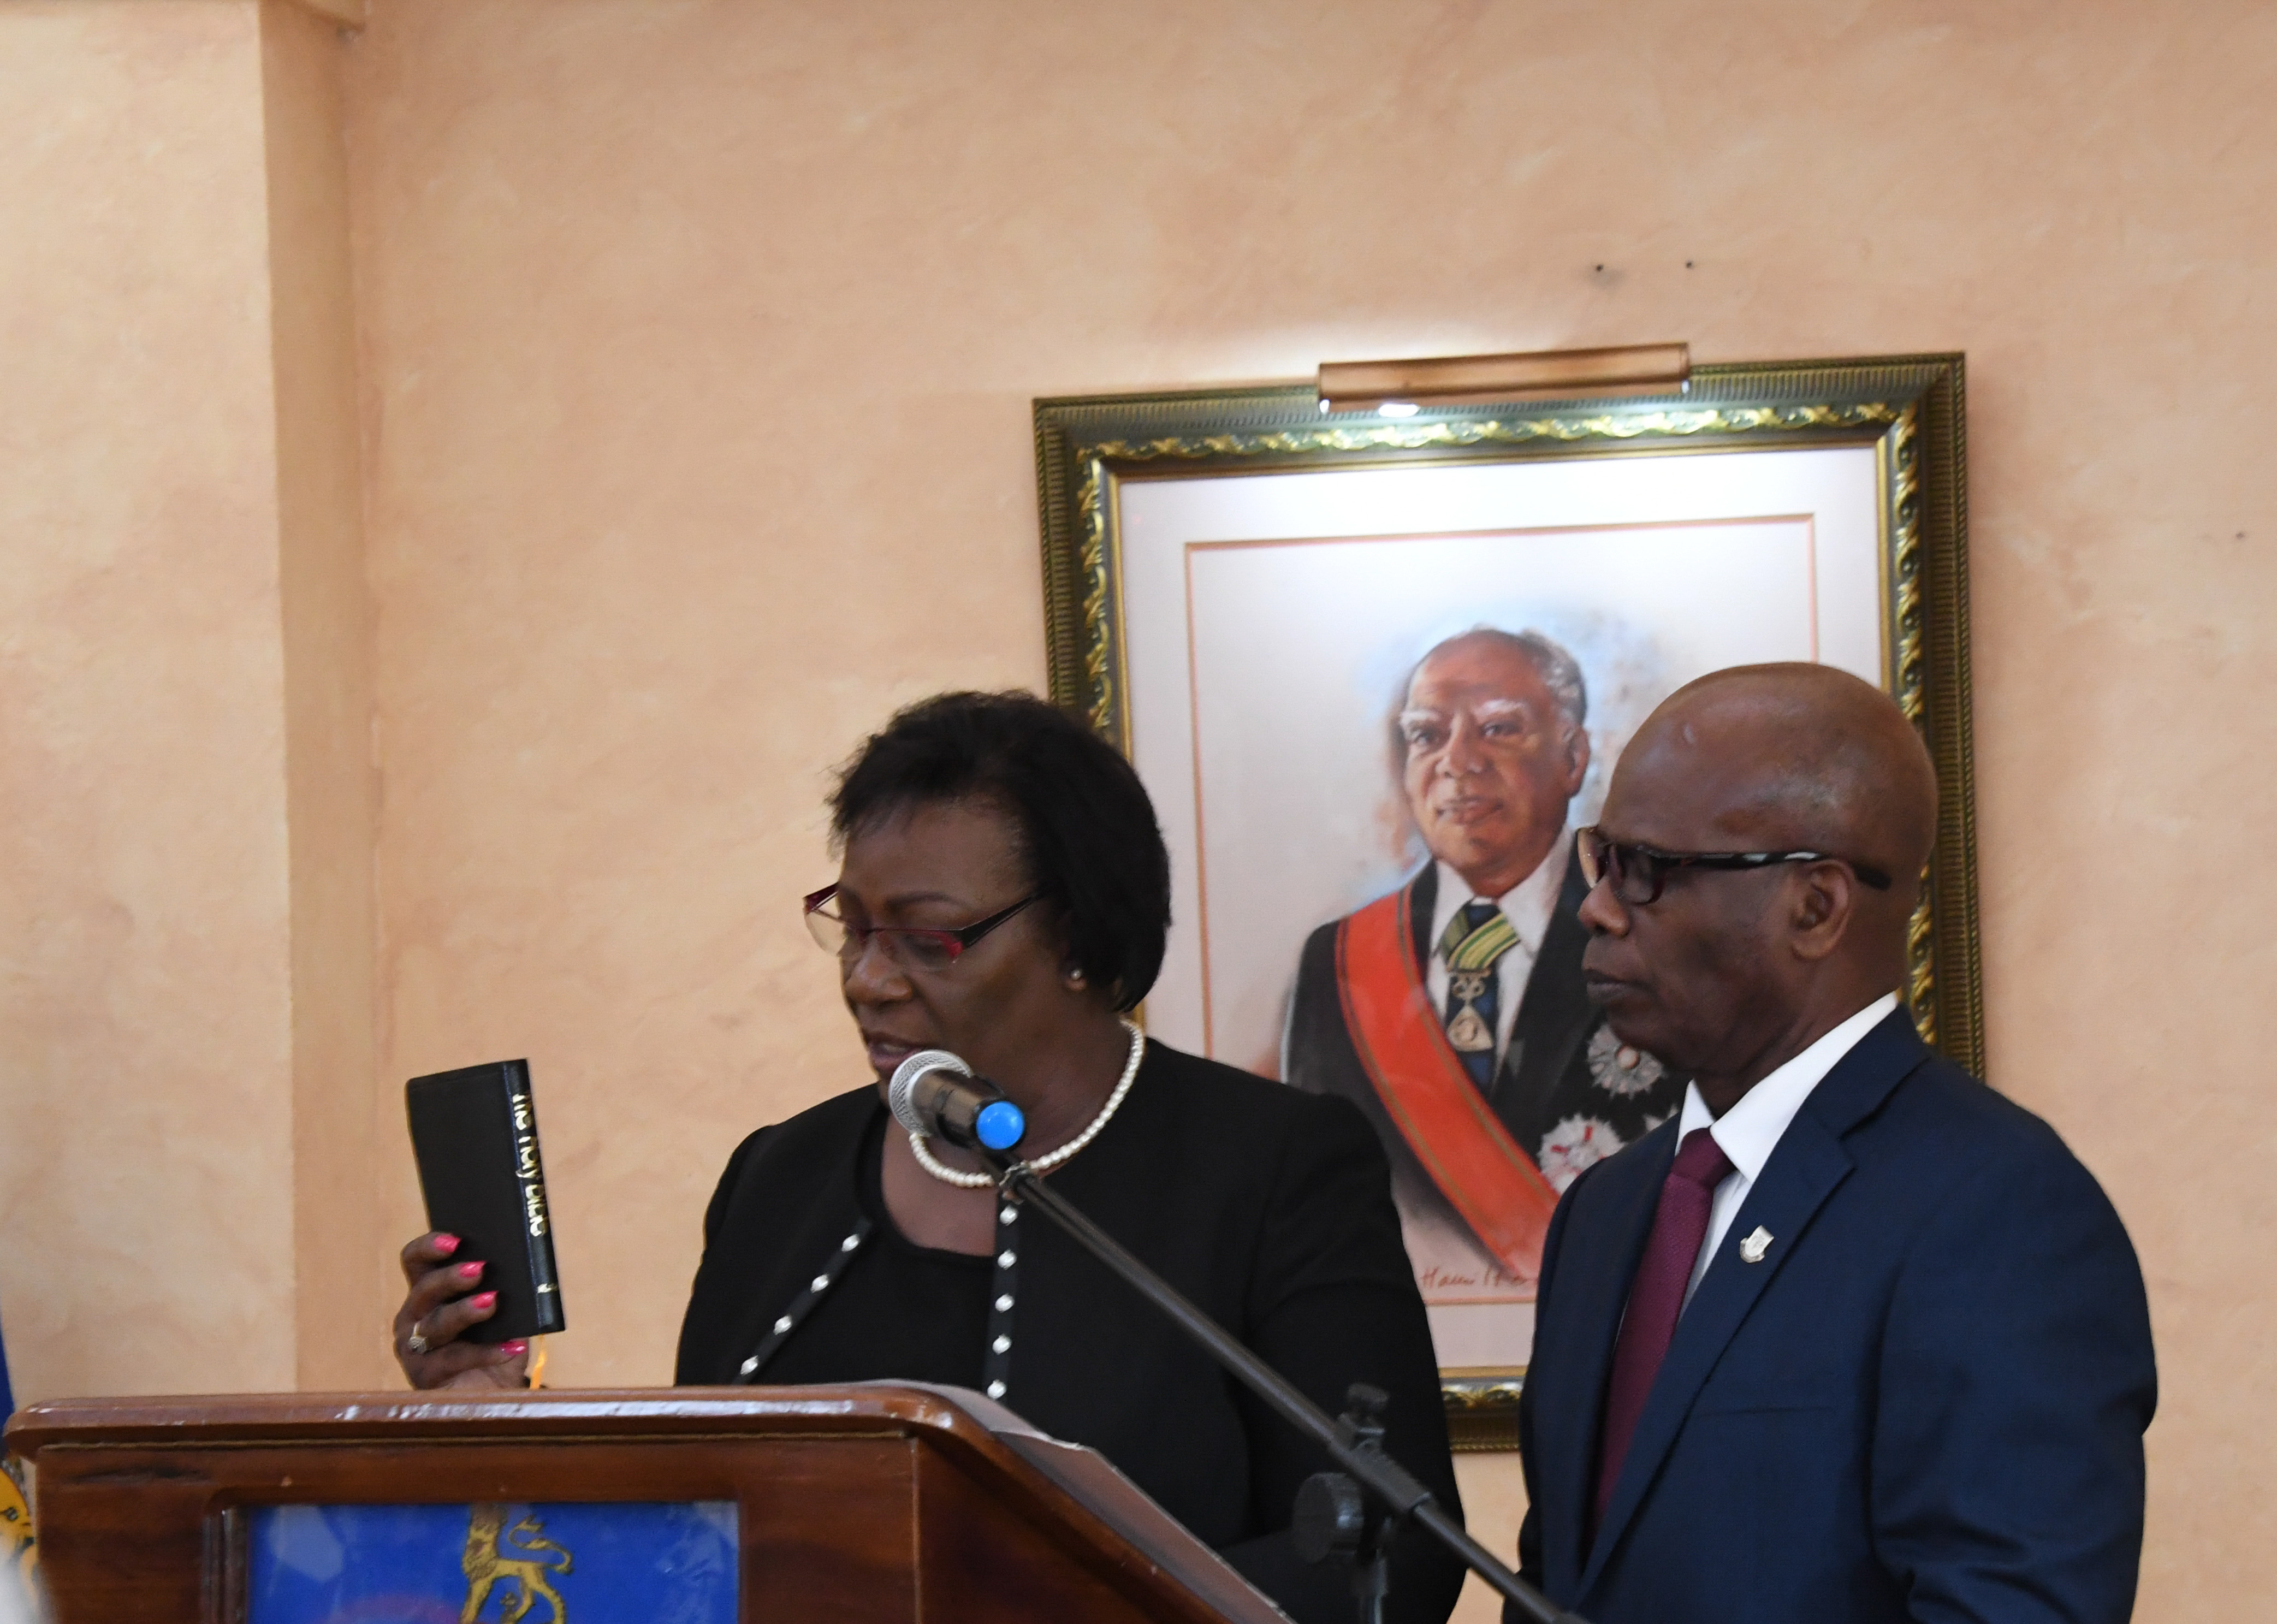 Deputy Governor-General the Honourable Steadman Fuller observes as Her Honour Ms. Judith A. Pusey takes her Oath of Allegiance and Judicial Oath during the swearing-in ceremony at King's House on January 5.